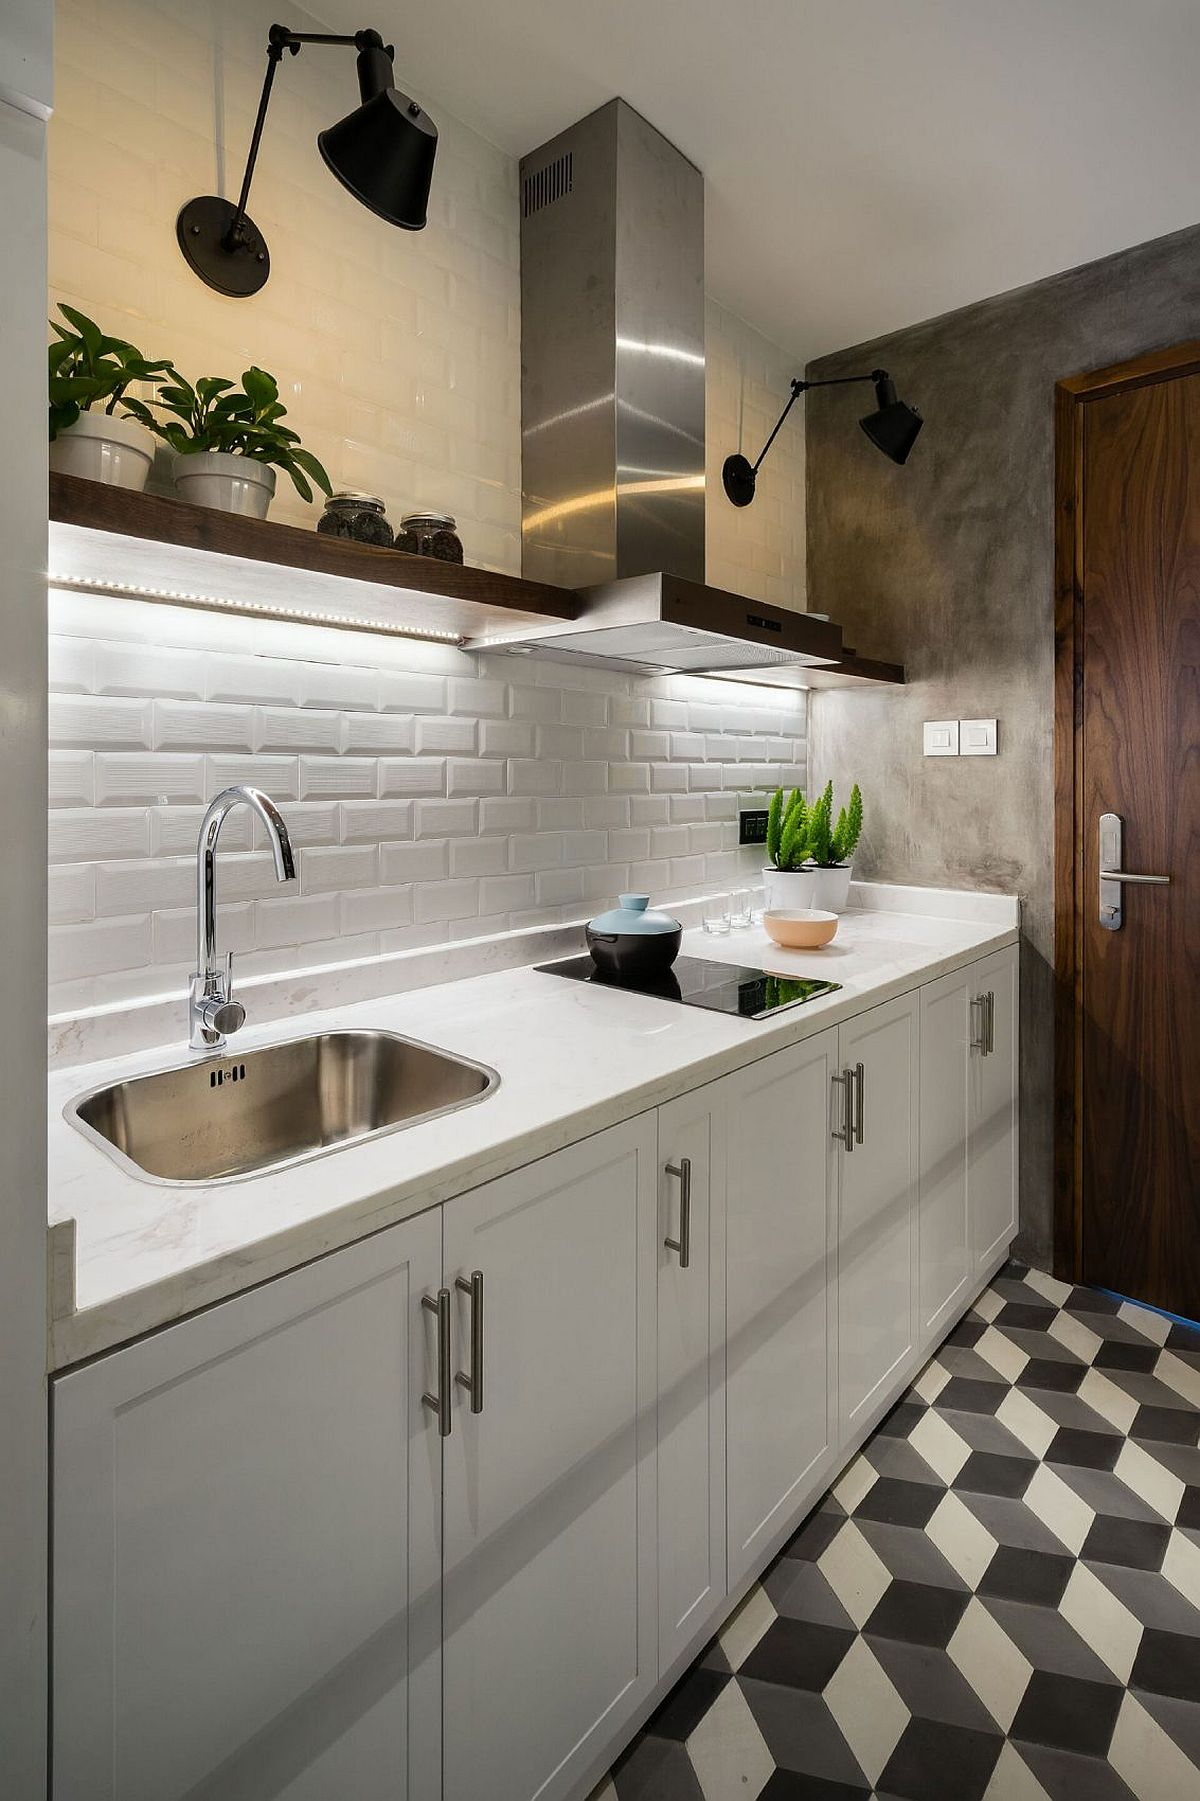 Small kitchen with white tiles and under cabinet lighting